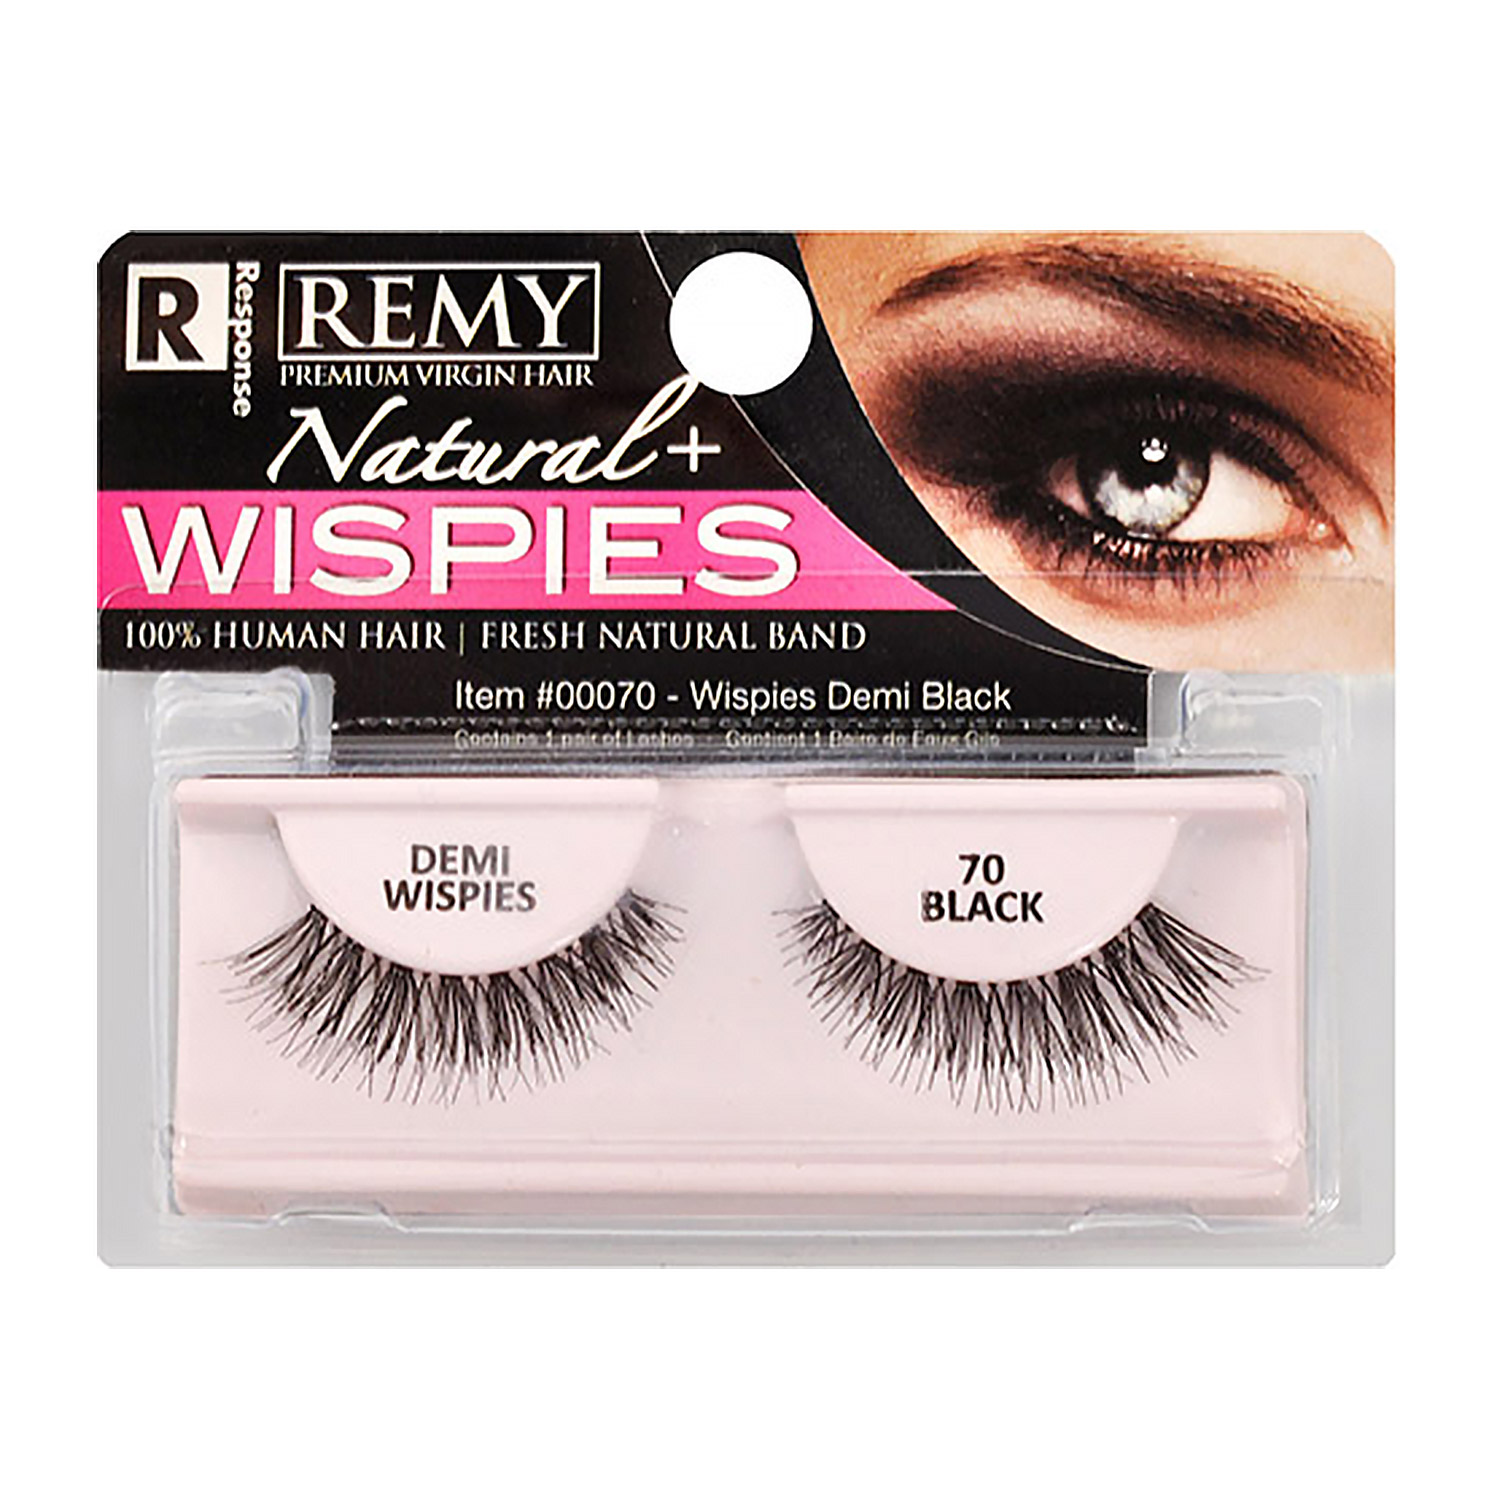 4a2cc58a8a5 Response REMY(Premium virgin hair) Natural + Wispies. Regular Price: $2.99.  Special Price: $1.99. KISS VLuxe Silk Chiffon Eyelashes